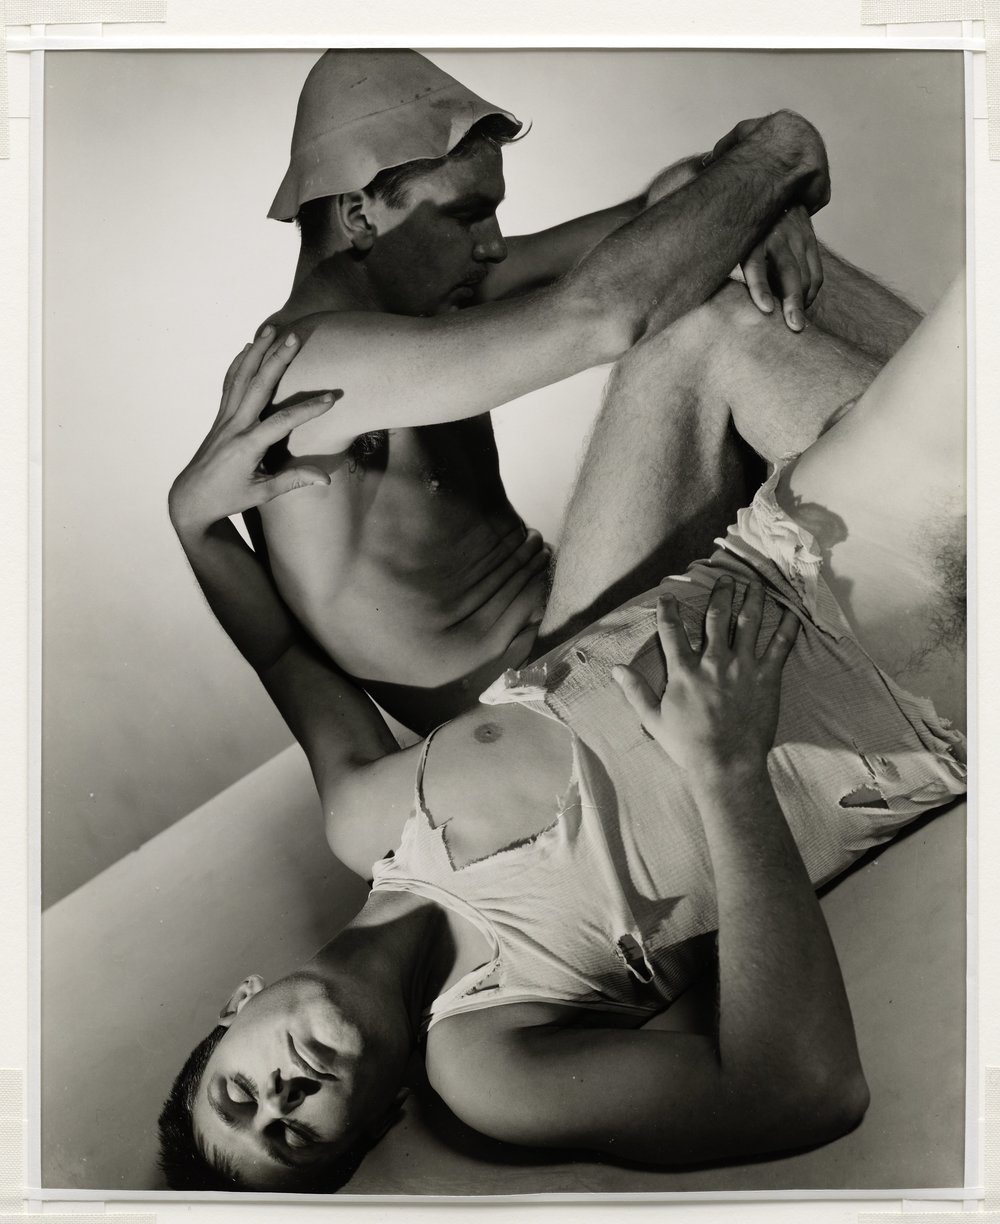 George Platt Lynes Paul Cadmus and Jared French, 1937 © 2018 Estate of George Platt Lynes Courtesy of Soloman R Guggenheim Museum, New York